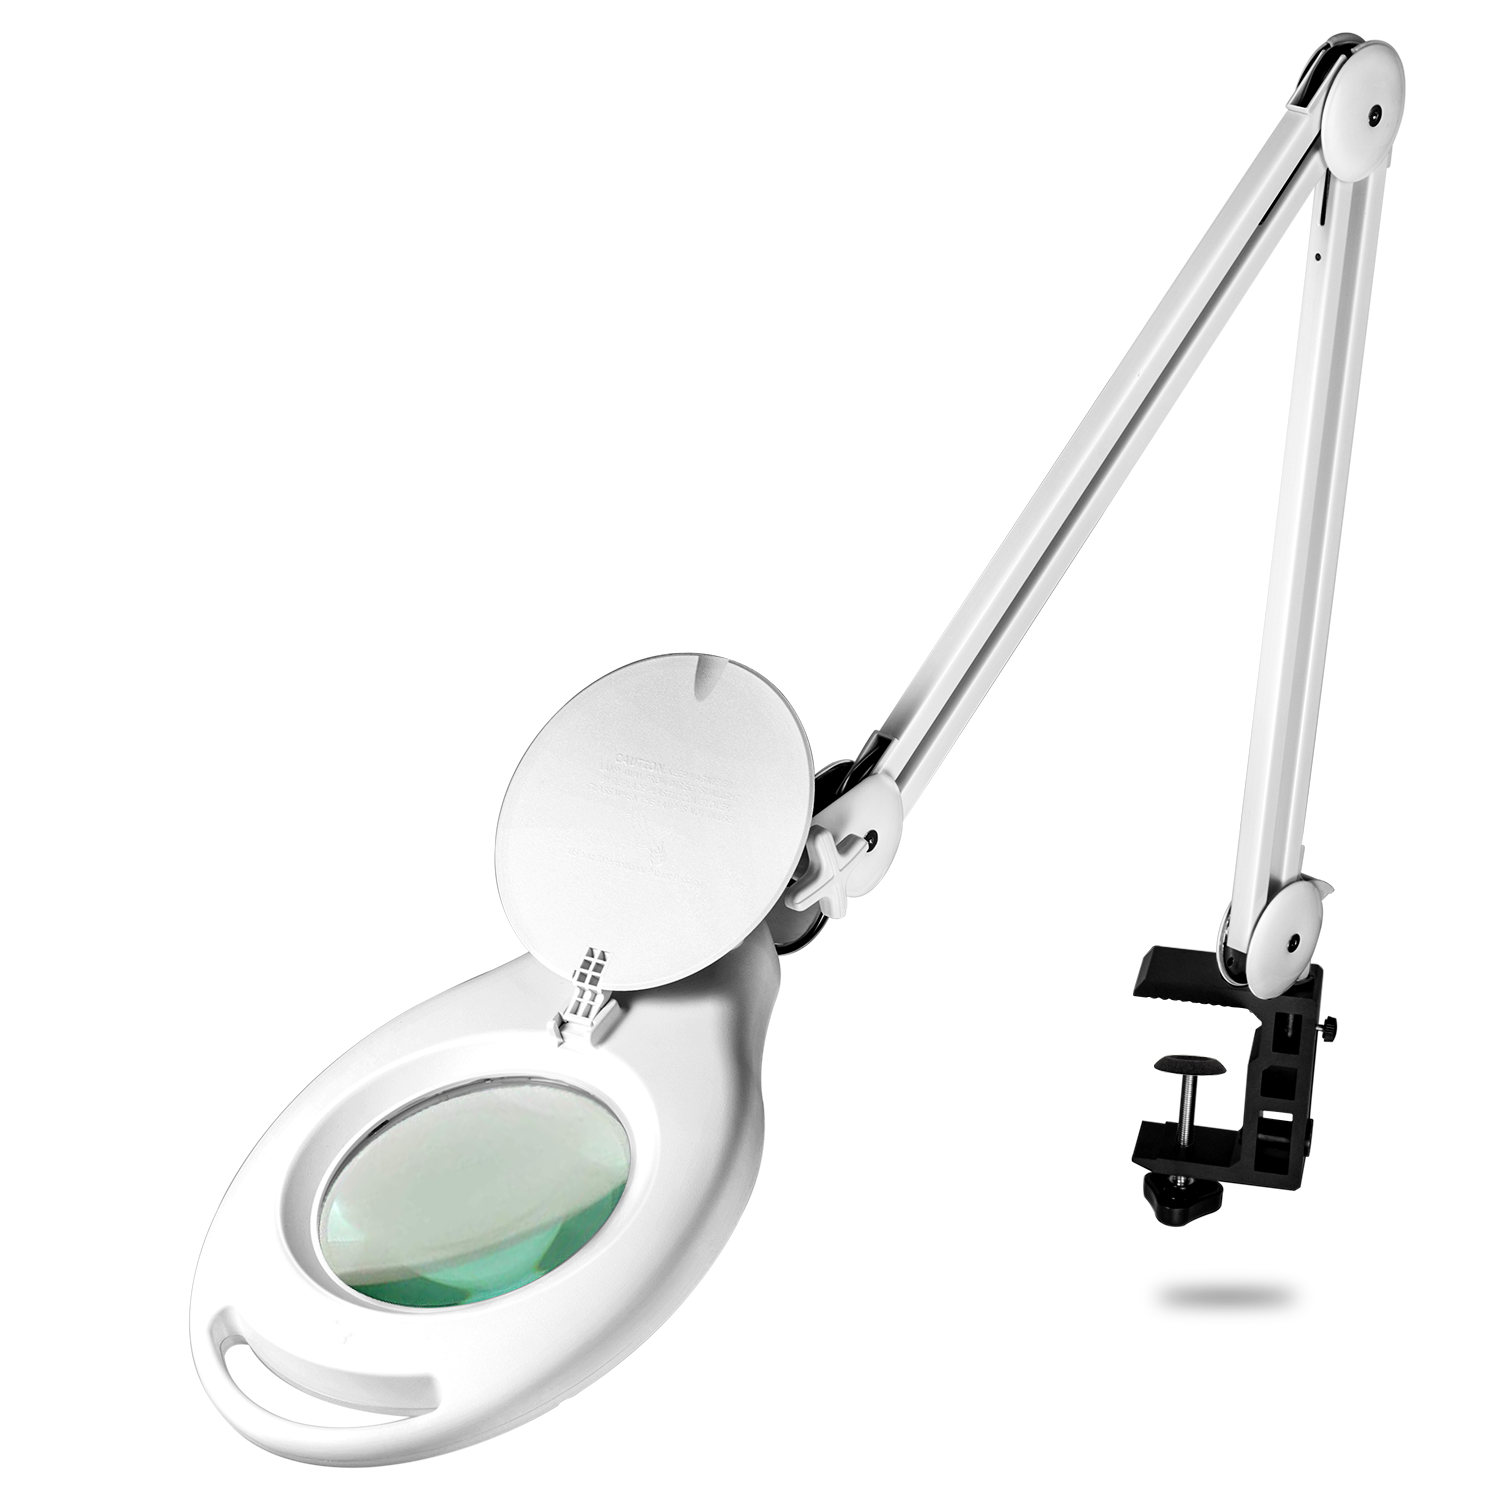 r lite clarity magnifier lamp for amd